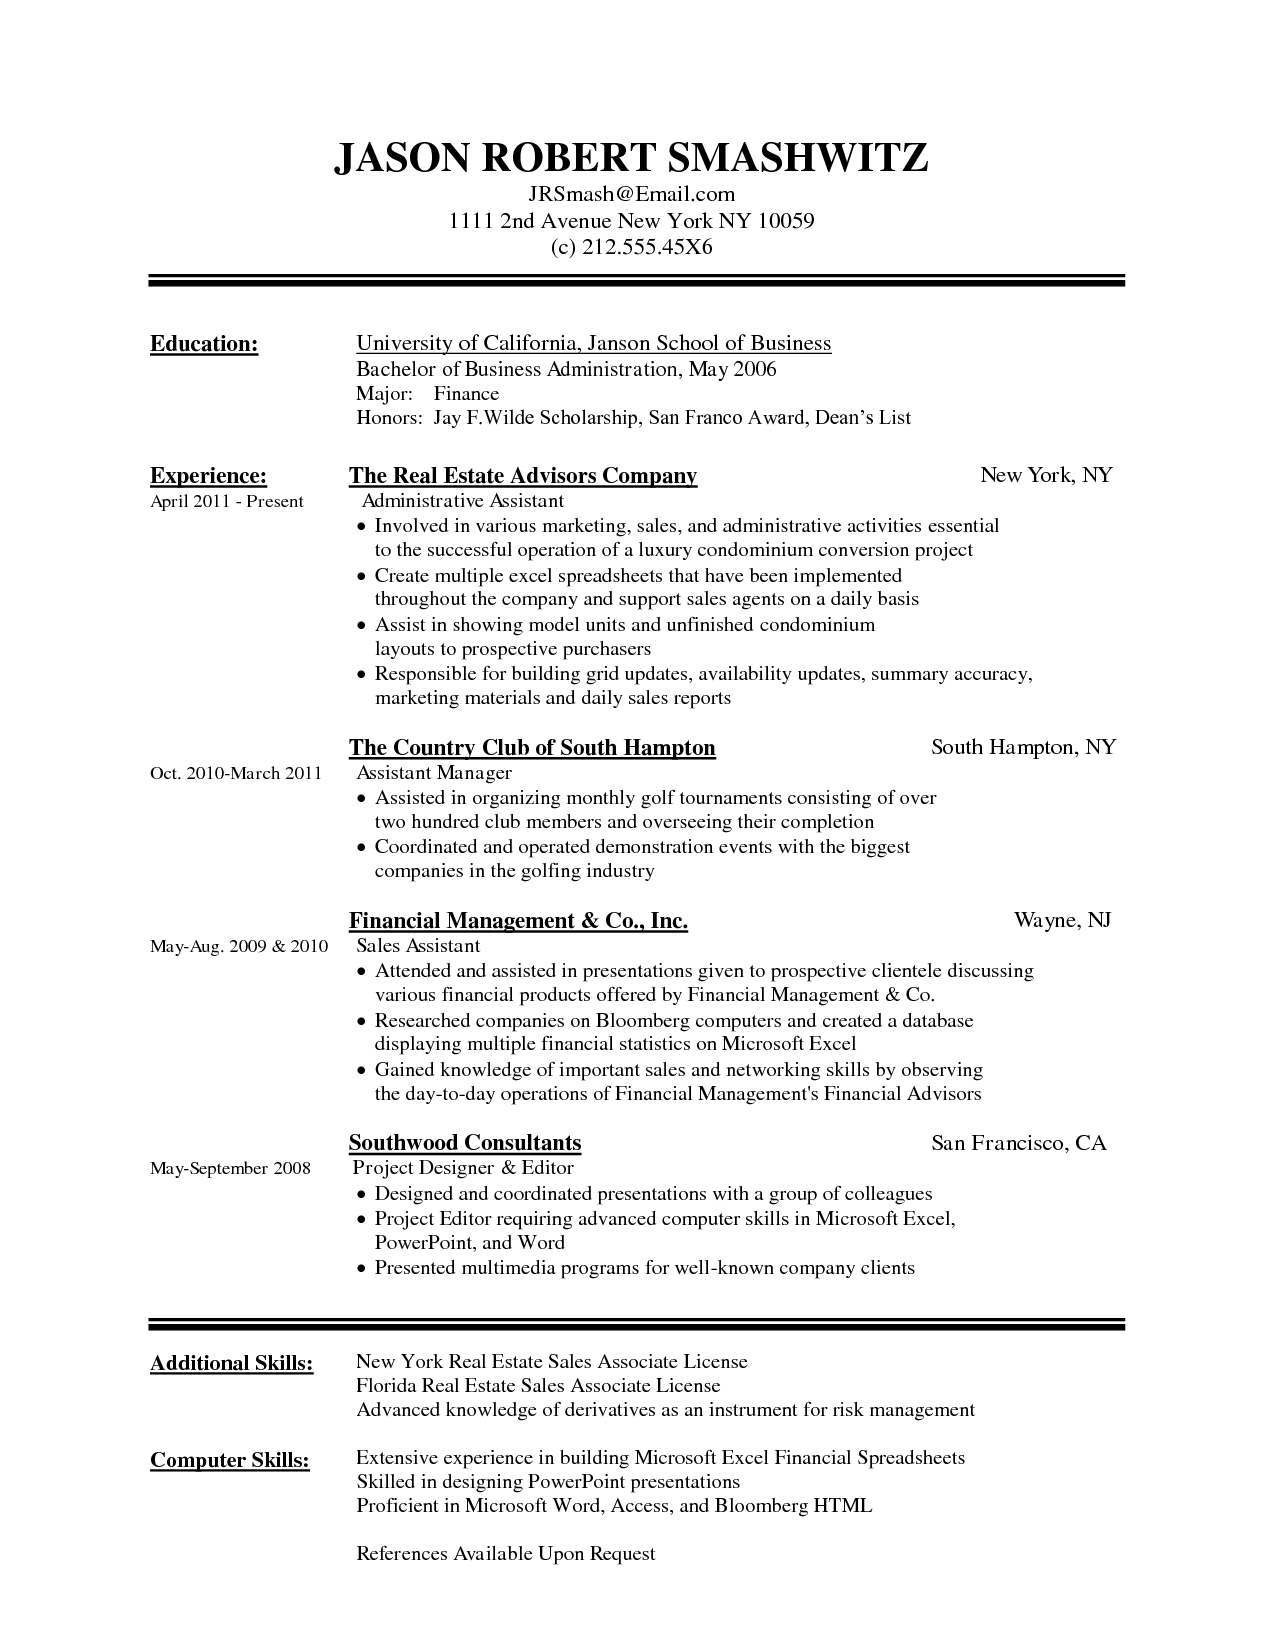 resumes in word dispatcher clerk cover letter resume template word 3 resumes in wordhtml - Free Resume Template For Word